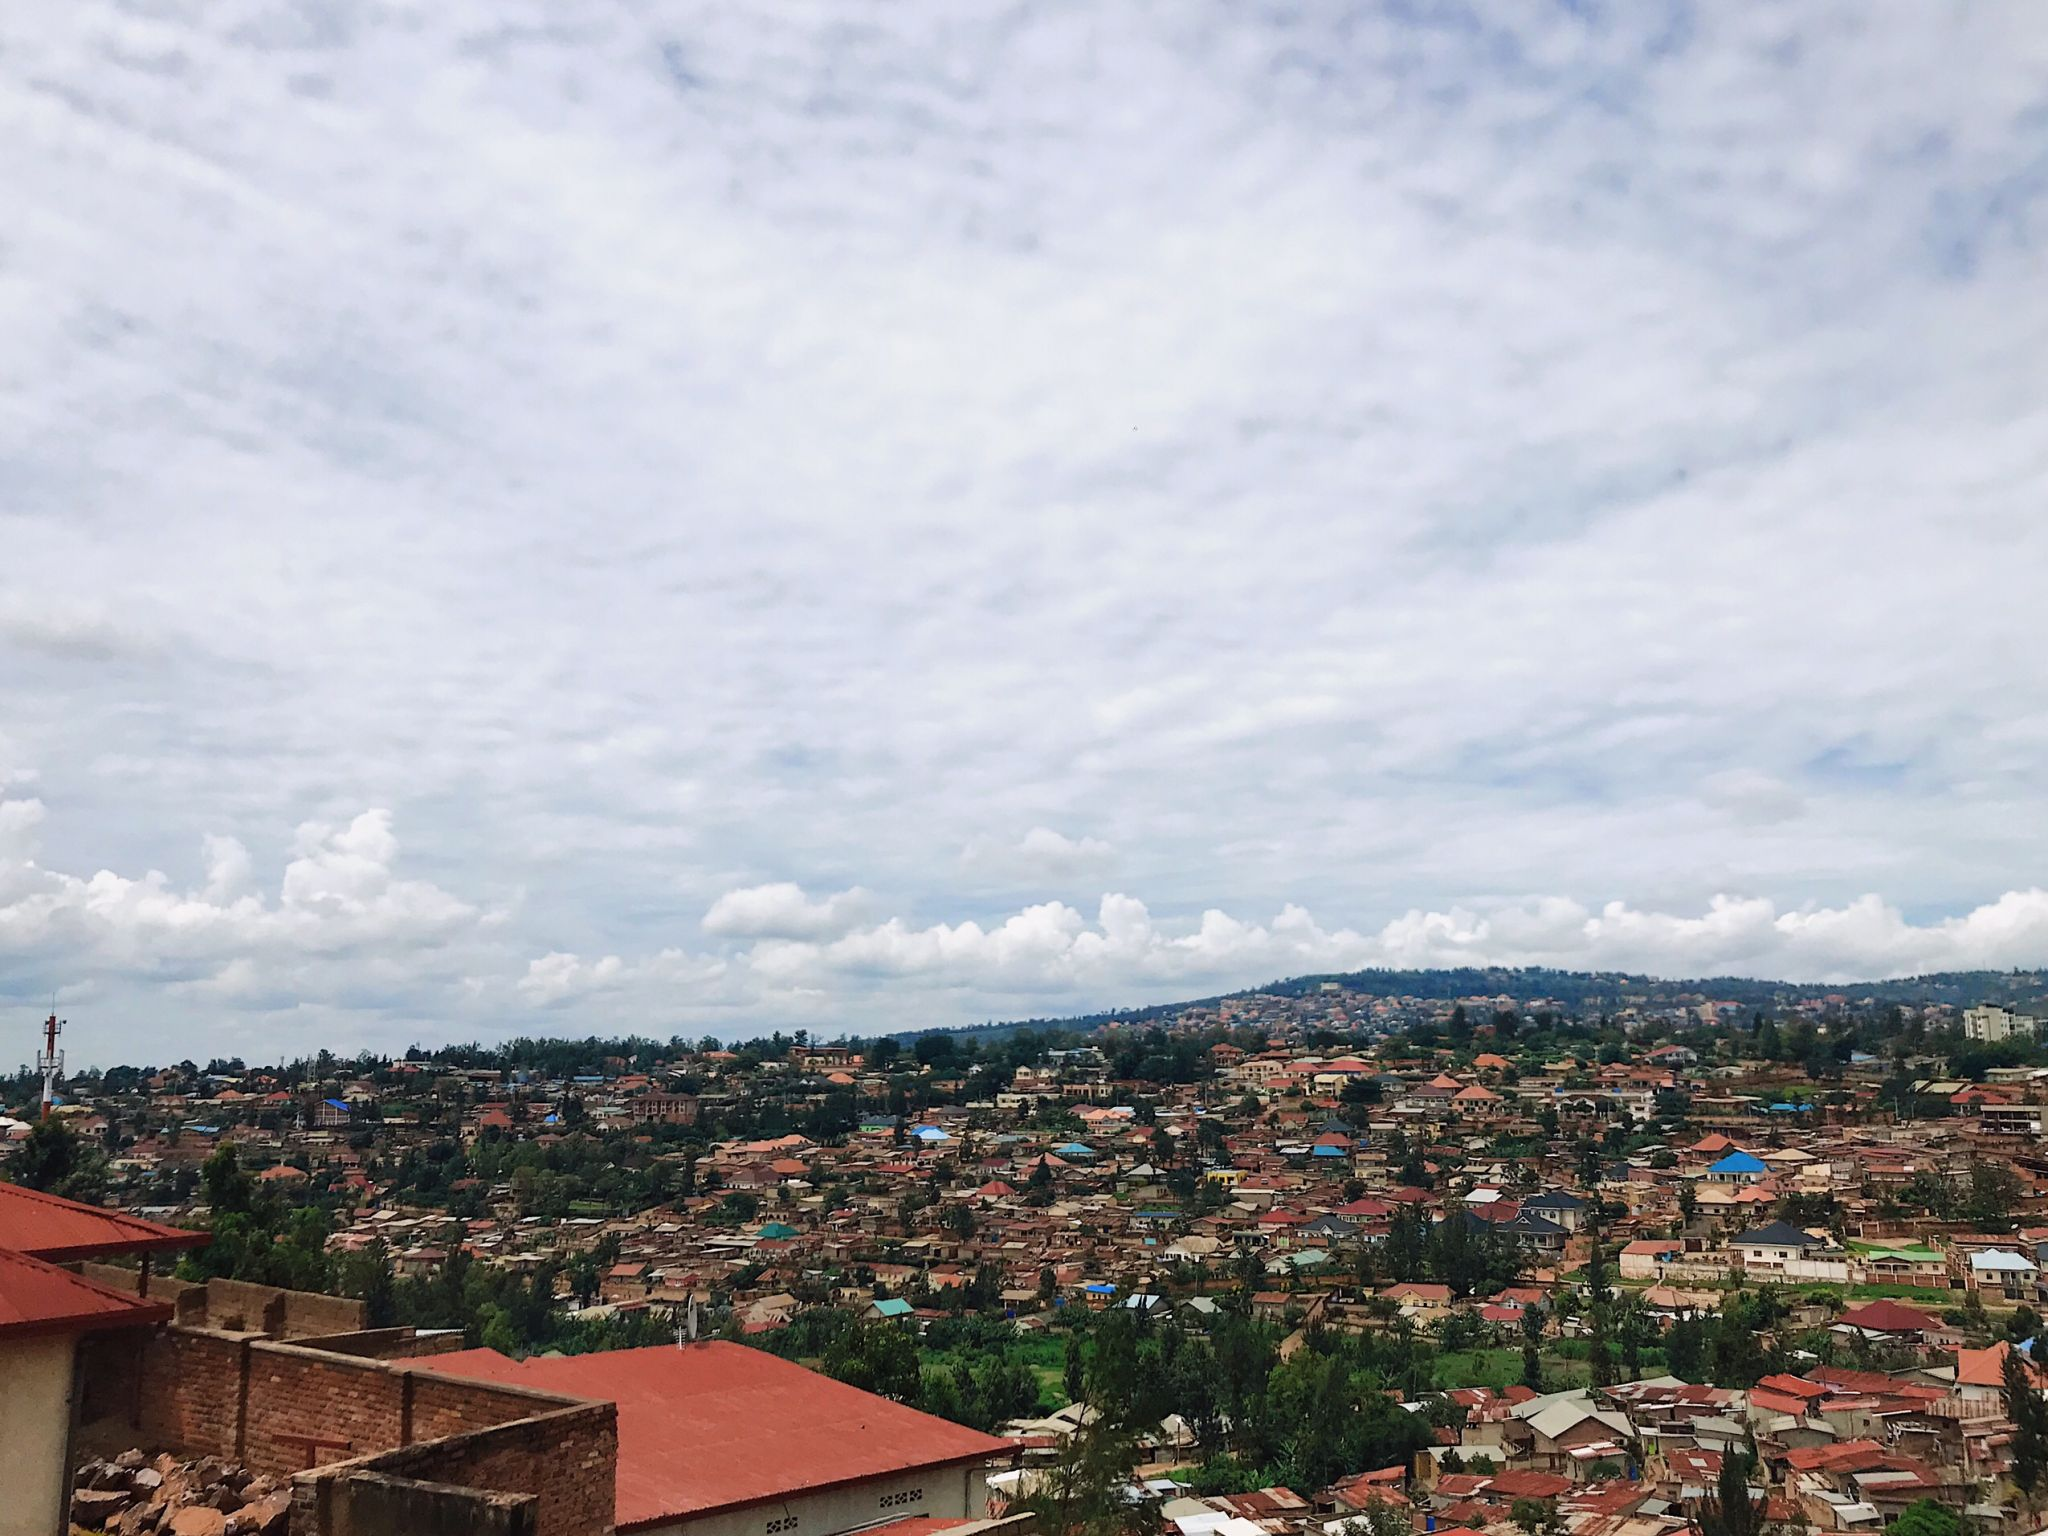 Image of Kigali the capital city of Rwanda